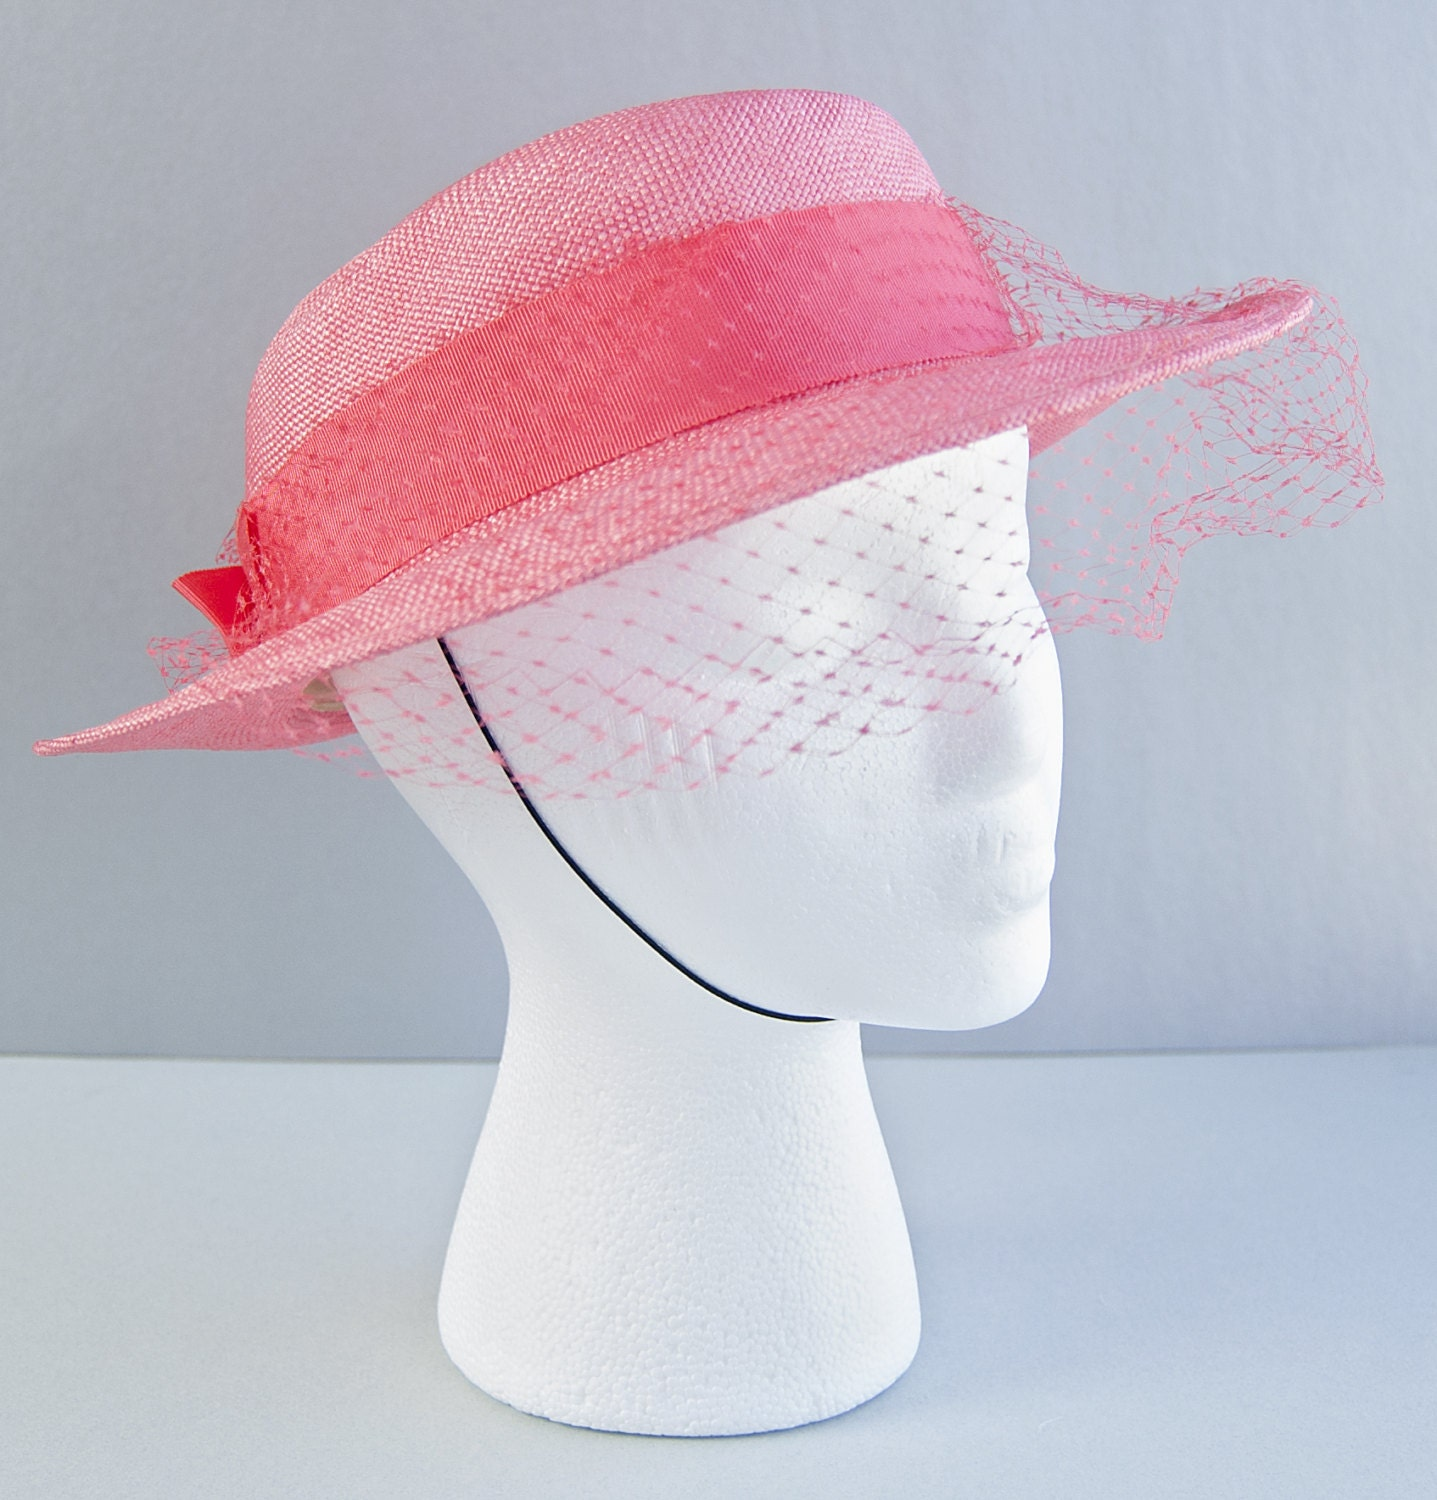 1960s Coral Pink Sailor Hat By Miss Bierner Sixties Boater